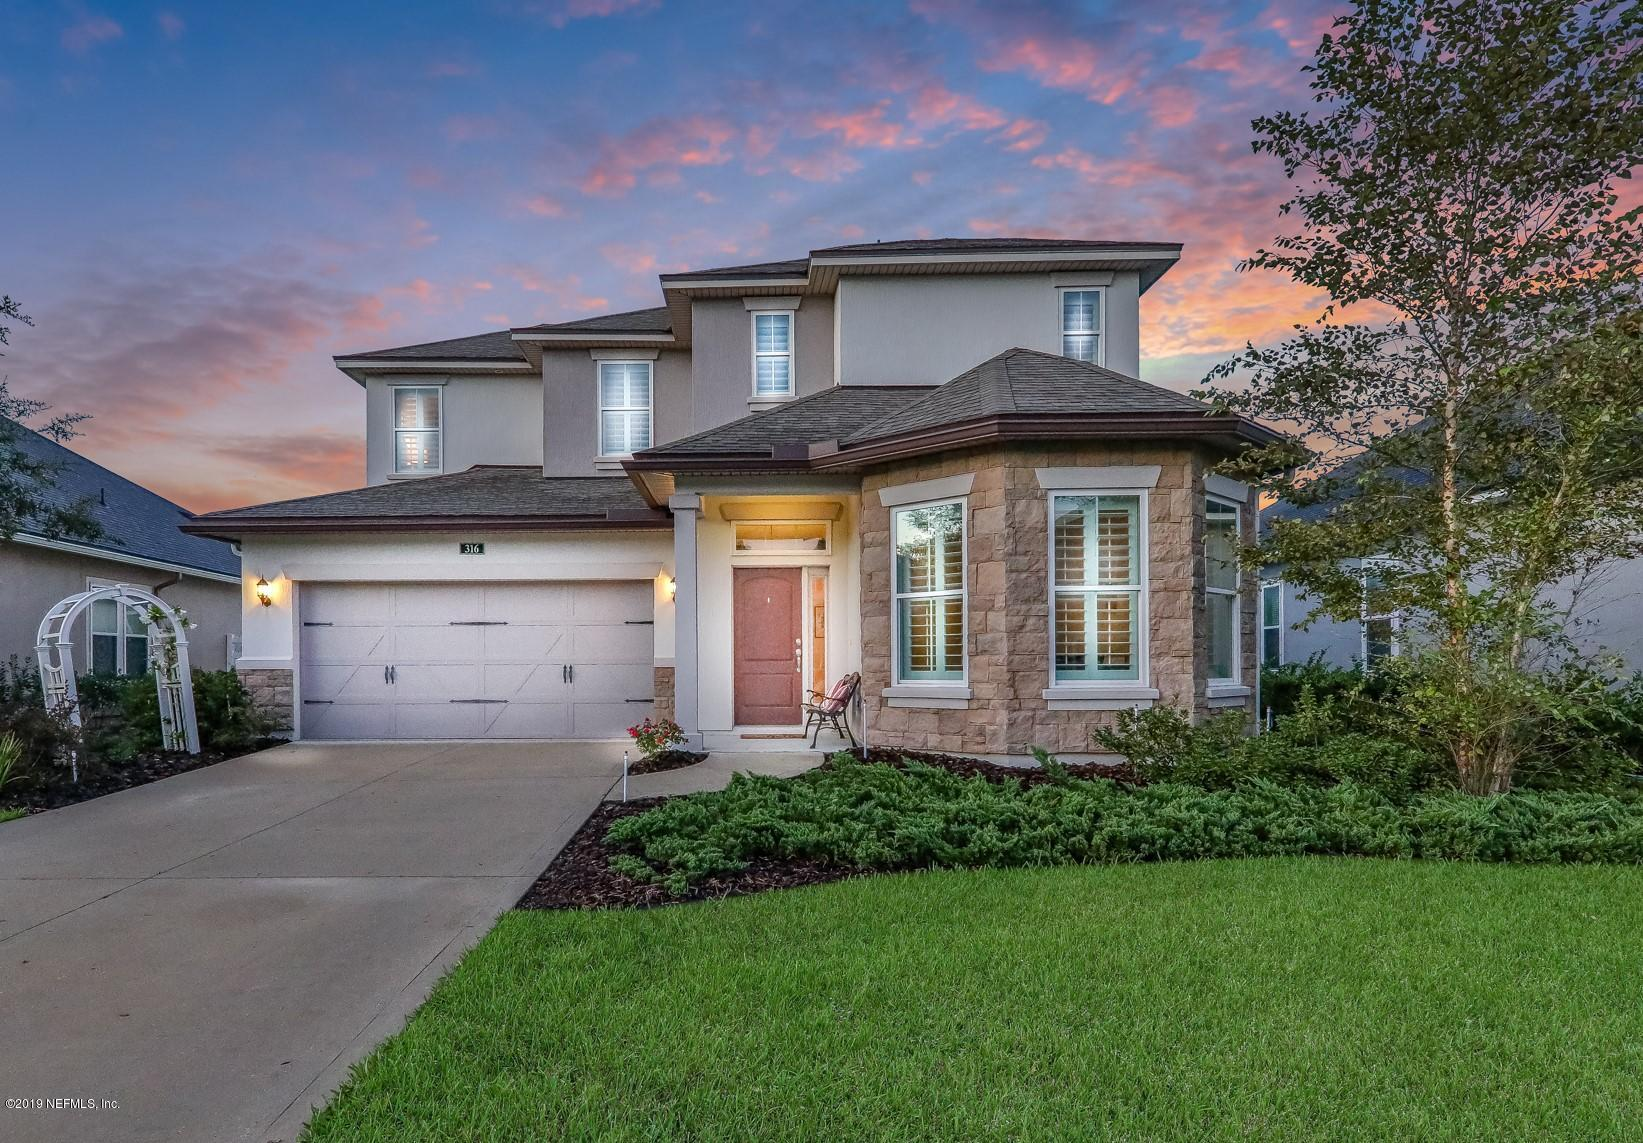 316 TOLLERTON, ST JOHNS, FLORIDA 32259, 4 Bedrooms Bedrooms, ,3 BathroomsBathrooms,Residential - single family,For sale,TOLLERTON,1021895